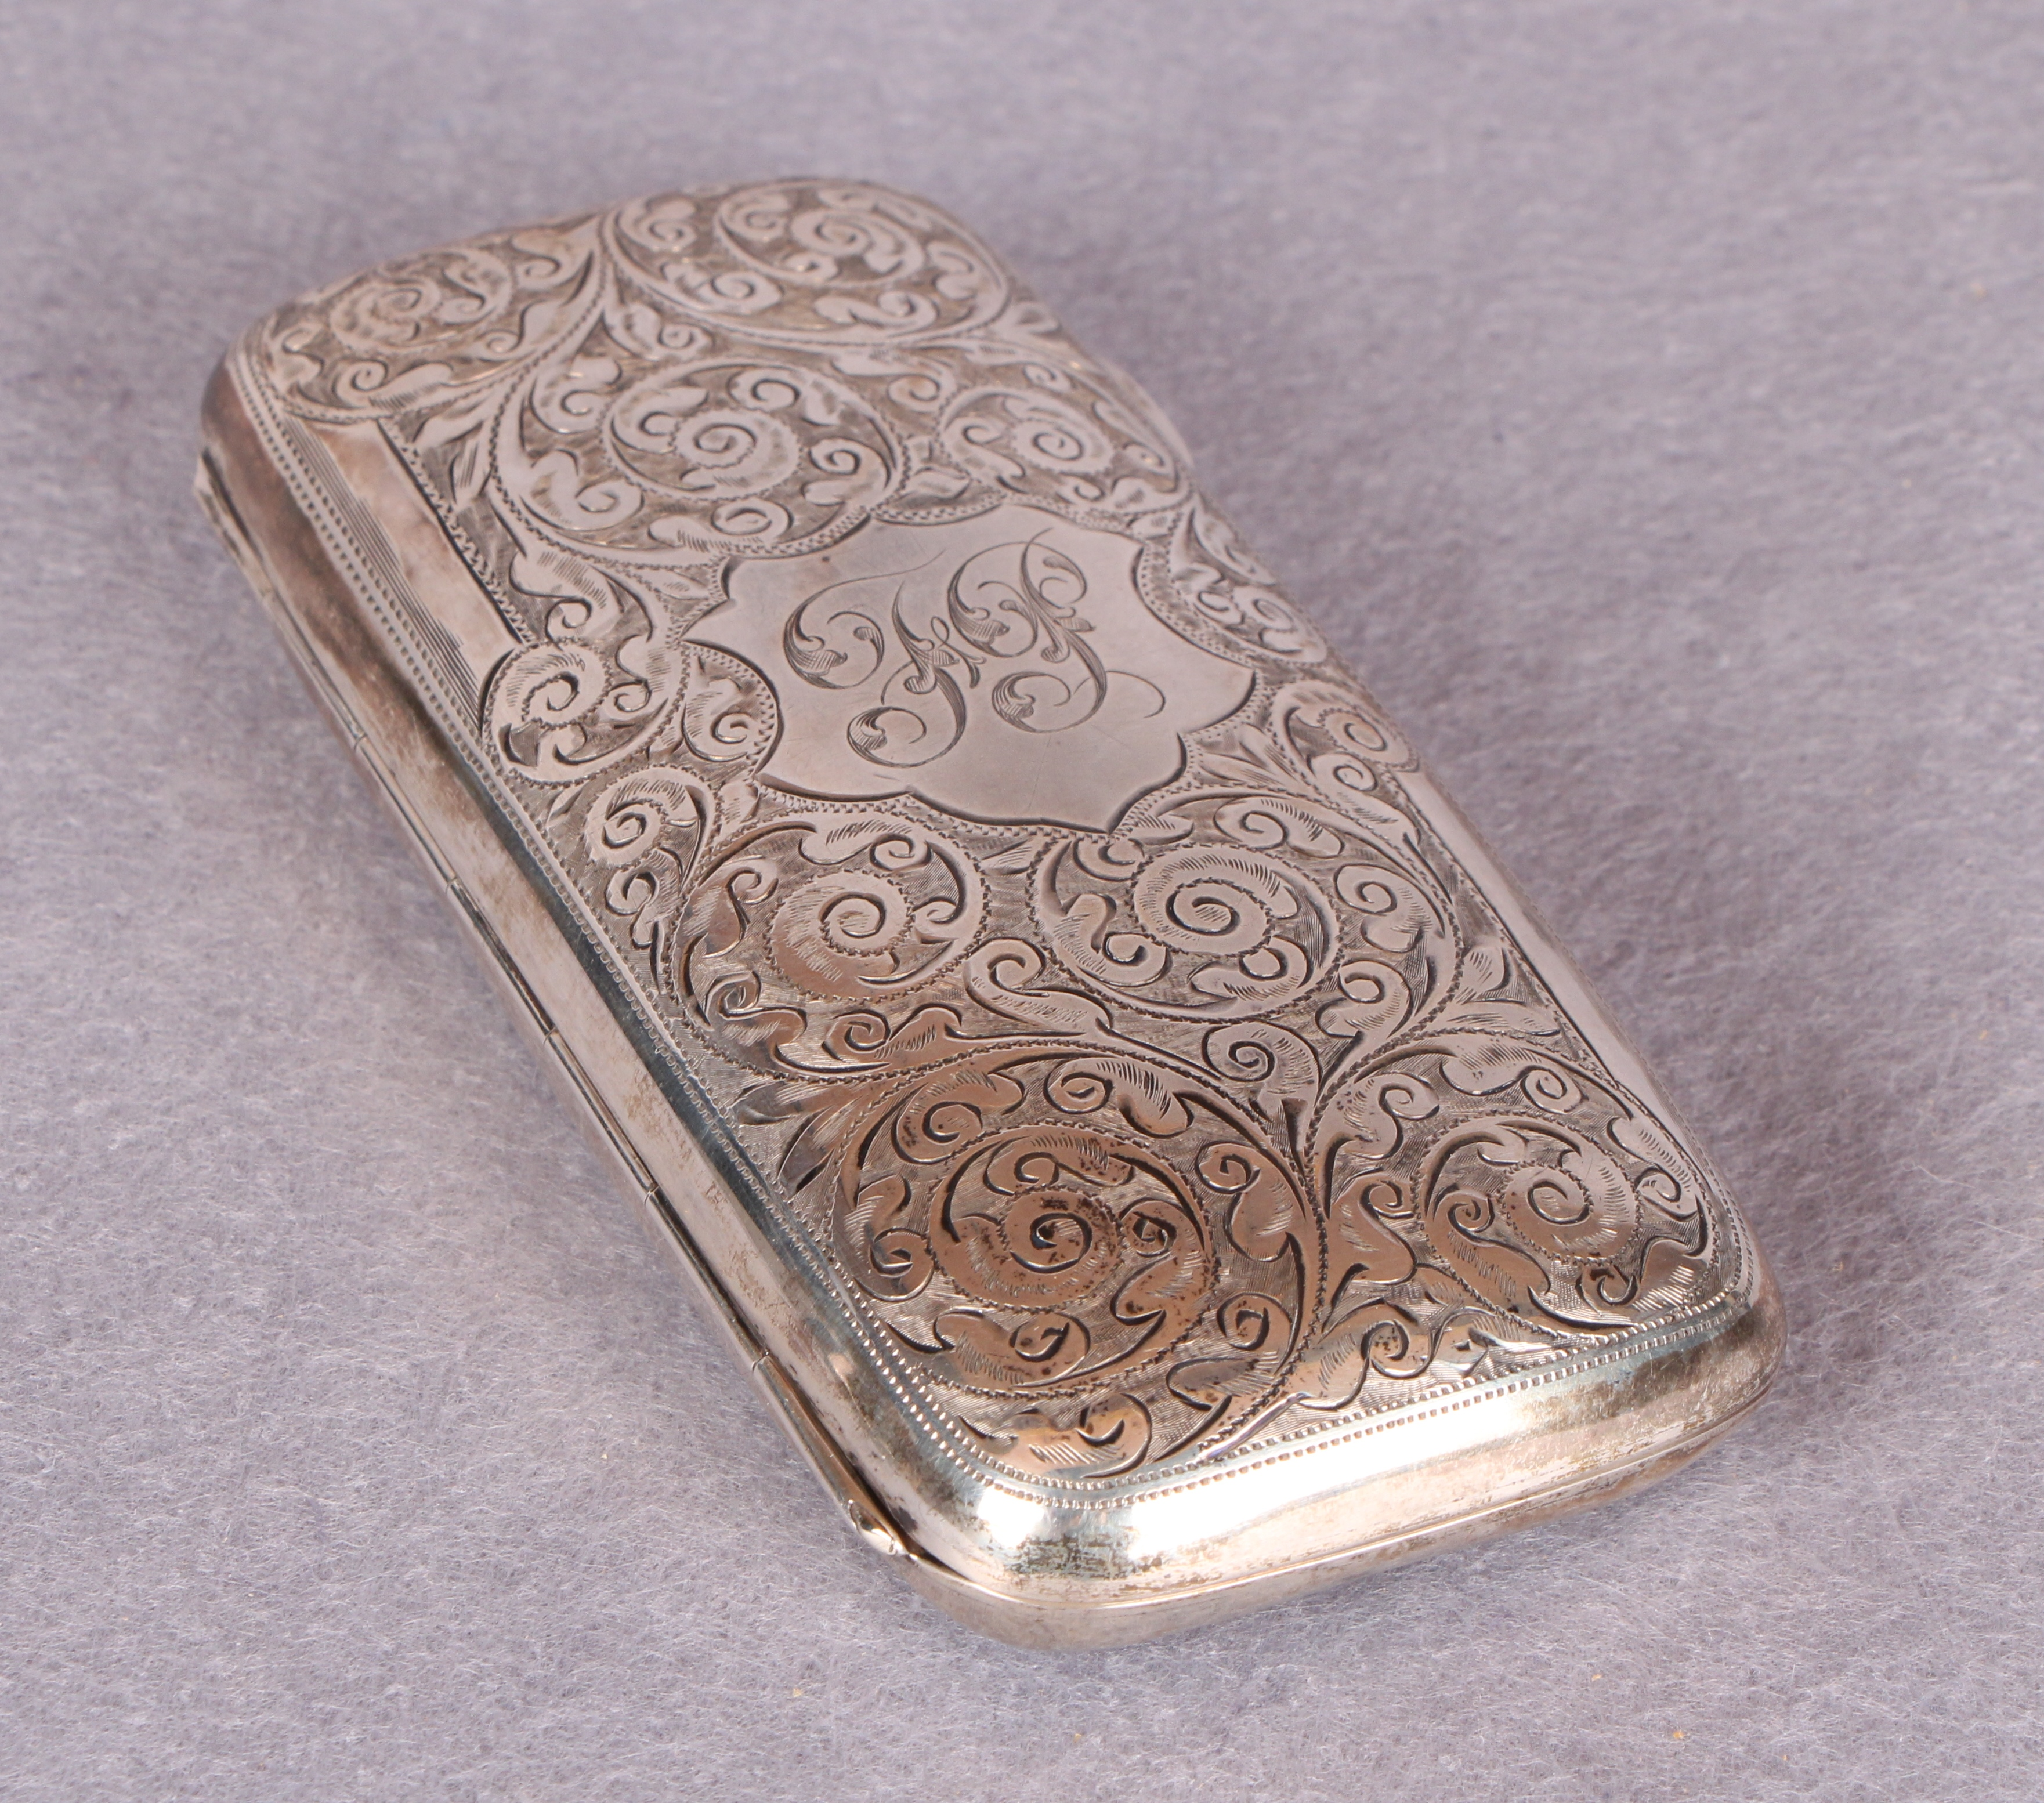 An Edwardian cigar case, overall engraved with foliage, the interior gilt,